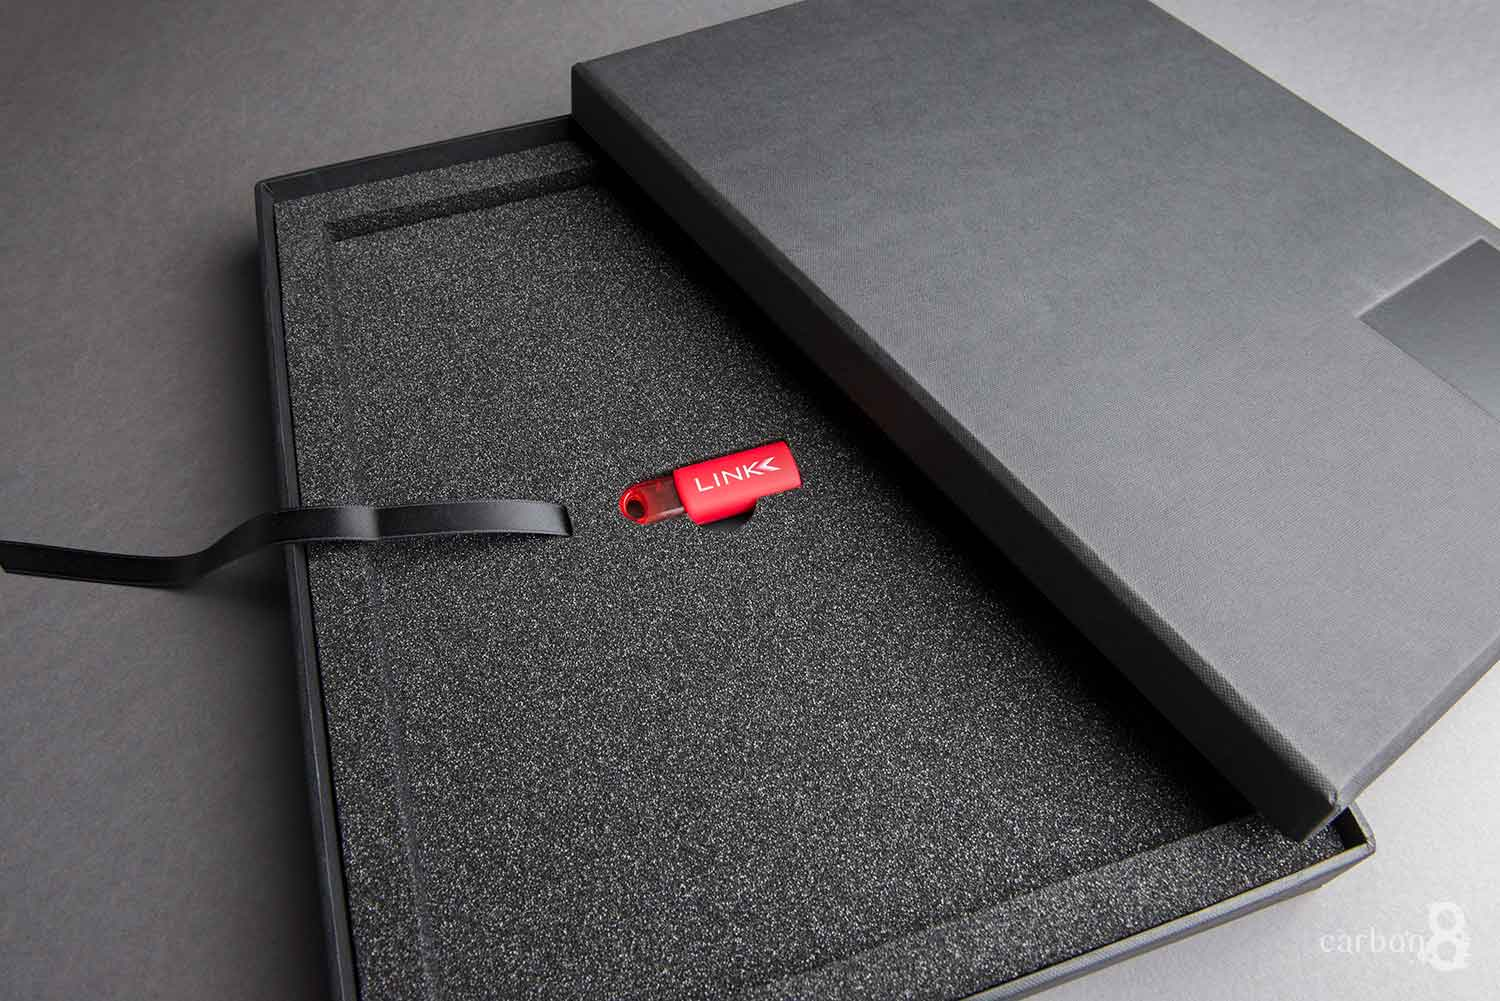 Link Marketing embossed box inside